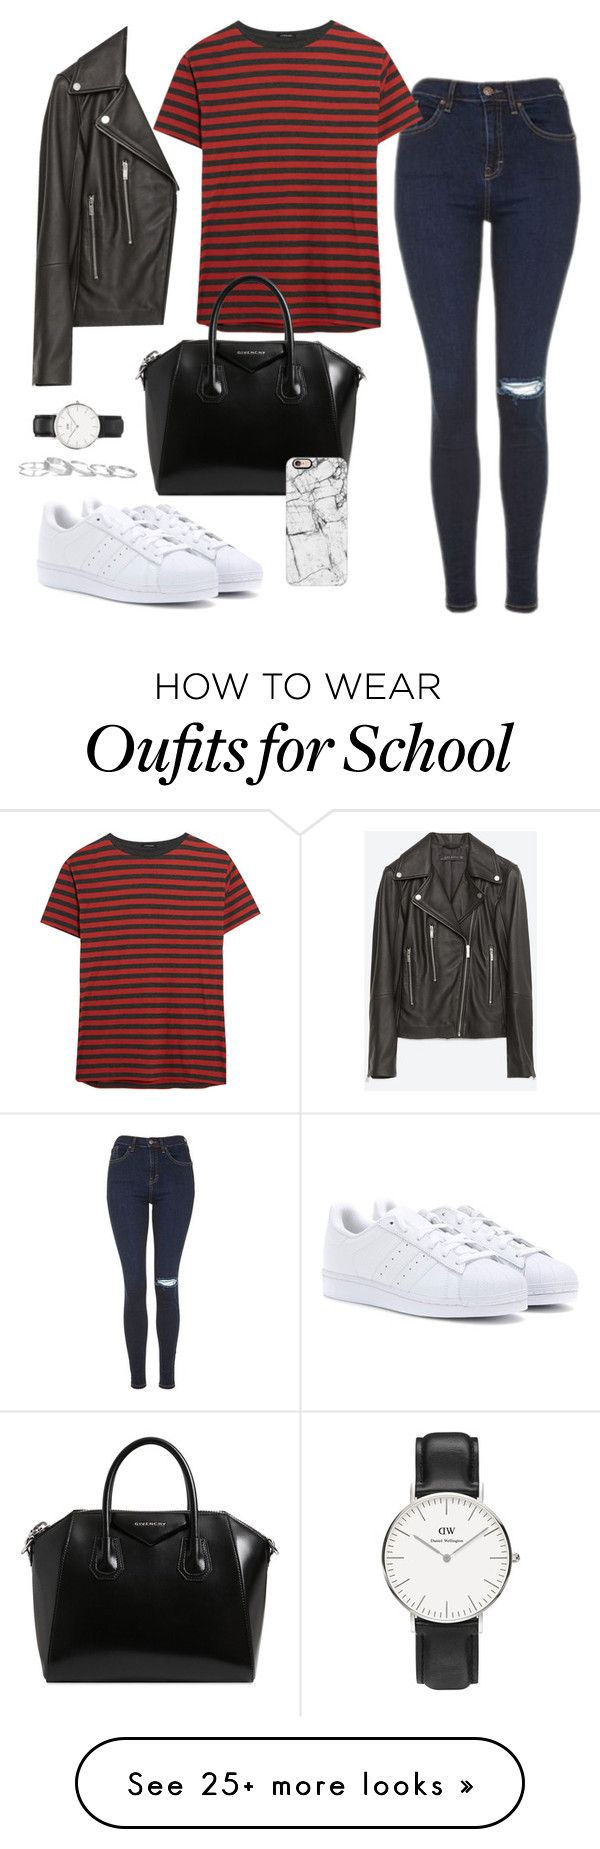 """""""Adidas superstar - 7 #School"""" by inlovewithtay on Polyvore featuring Zara, Topshop, R13, Daniel Wellington, Givenchy, adidas, Casetify, Kendra Scott, BackToSchool and superstar"""